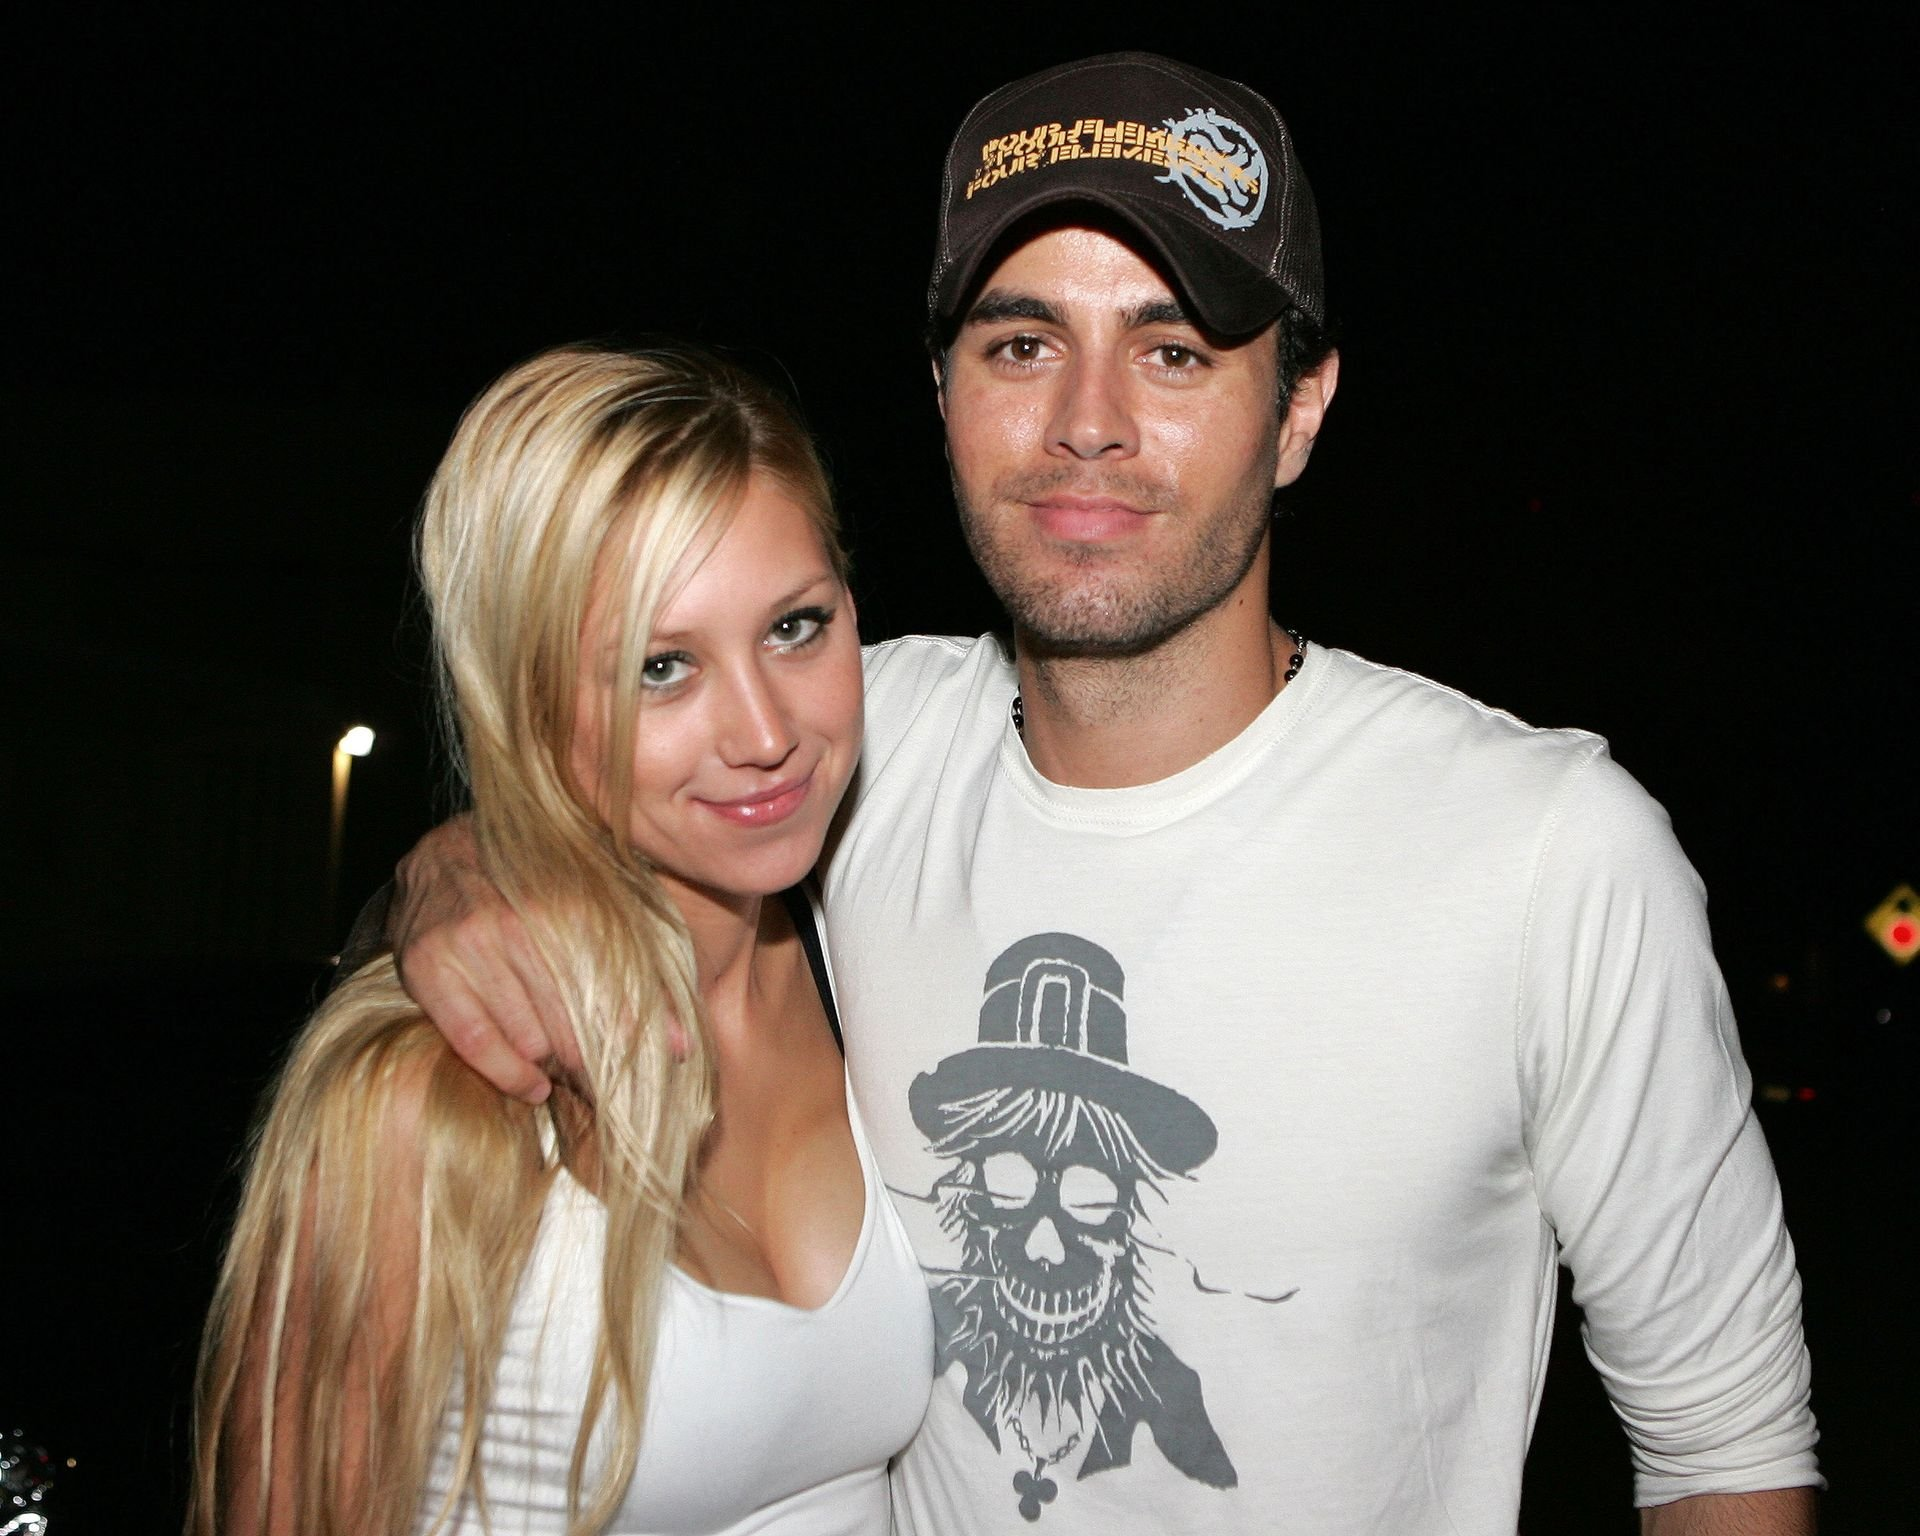 Tennis player Anna Kournikova and singer Enrique Iglesias leave Big Pink restaurant during the early morning hours on June 16, 2006   Photo: Getty Images